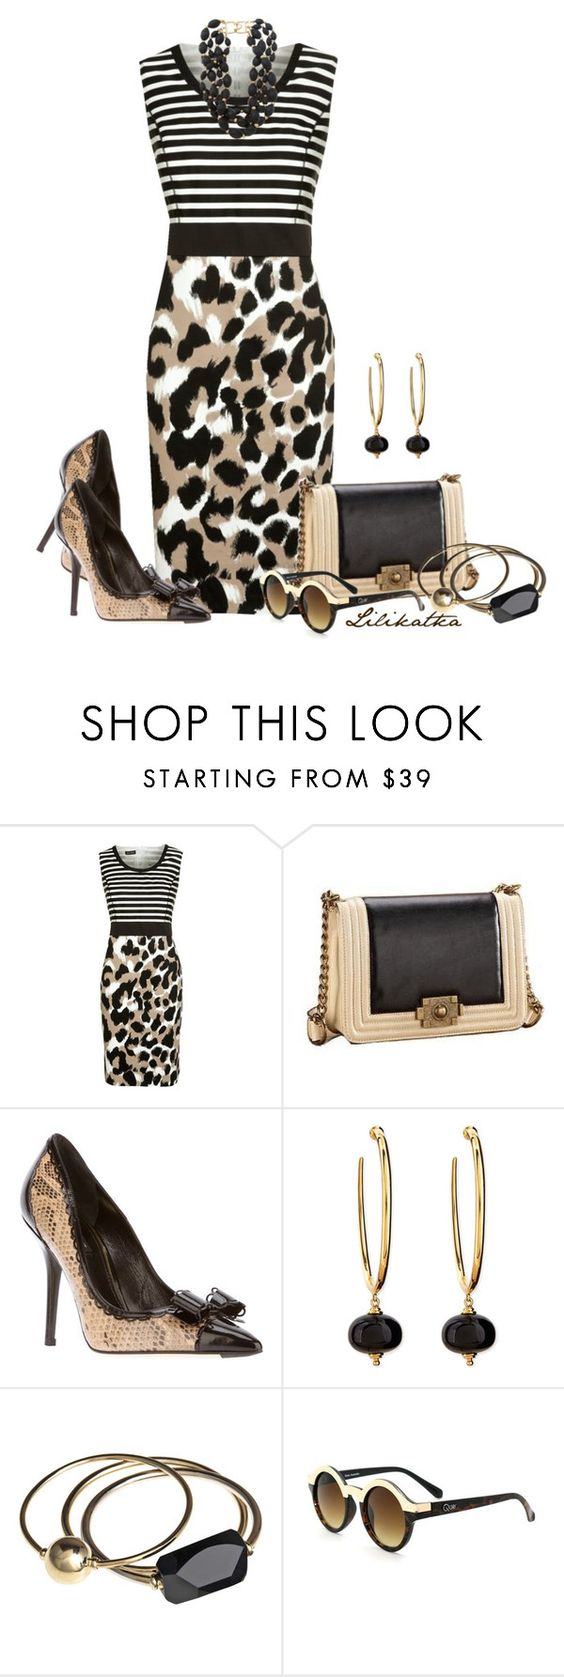 """""""Pivonka#982"""" by lilikatka ❤ liked on Polyvore featuring Gerry Weber, Dolce&Gabbana, Syna, By Malene Birger, Kenneth Jay Lane and Quay"""